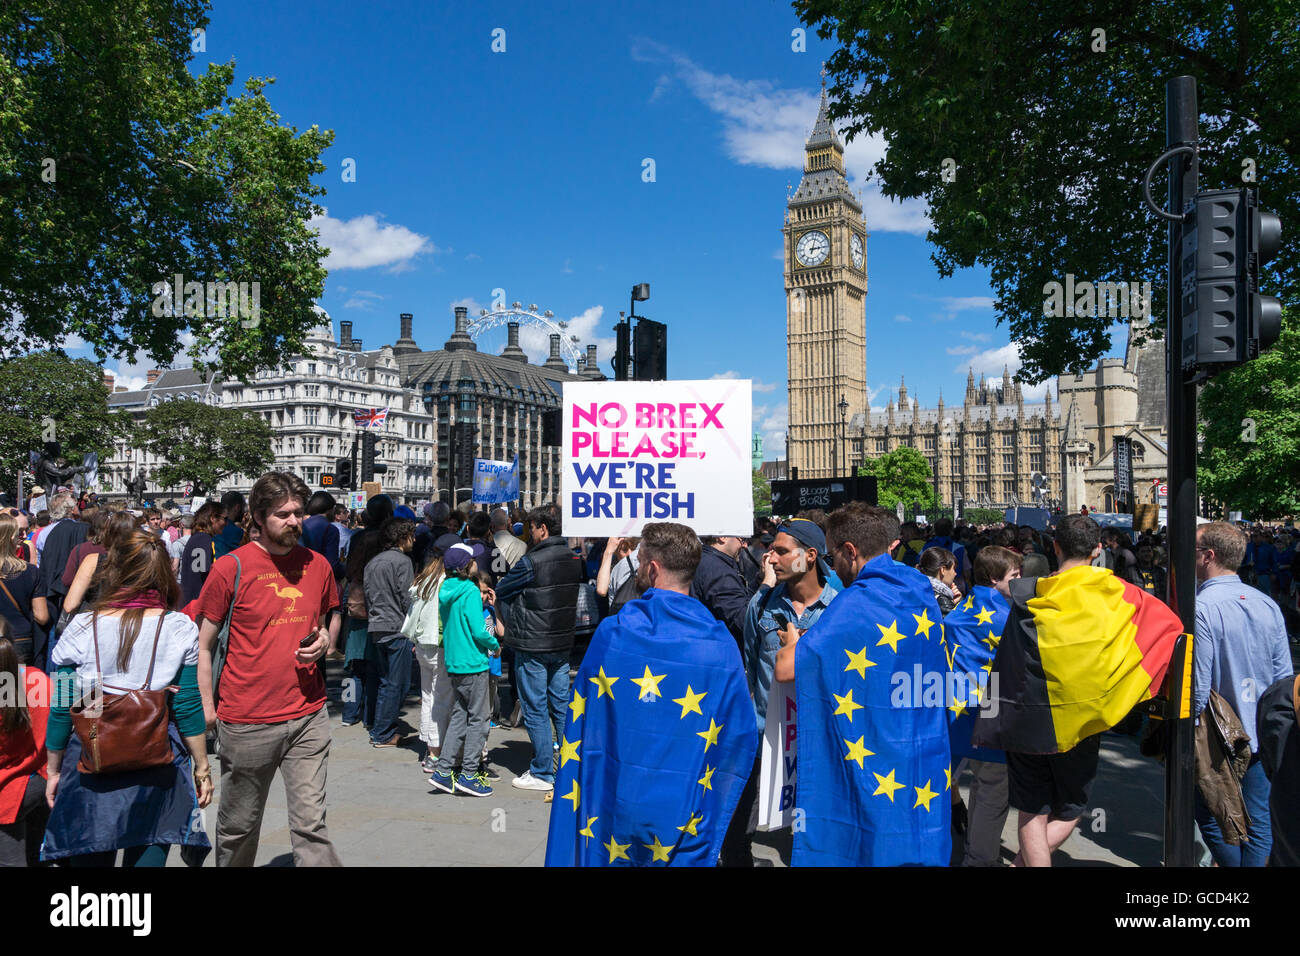 Anti- Brexit protestors wave banners against the UK Governments decision to leave European Union, crowds on street - Stock Image